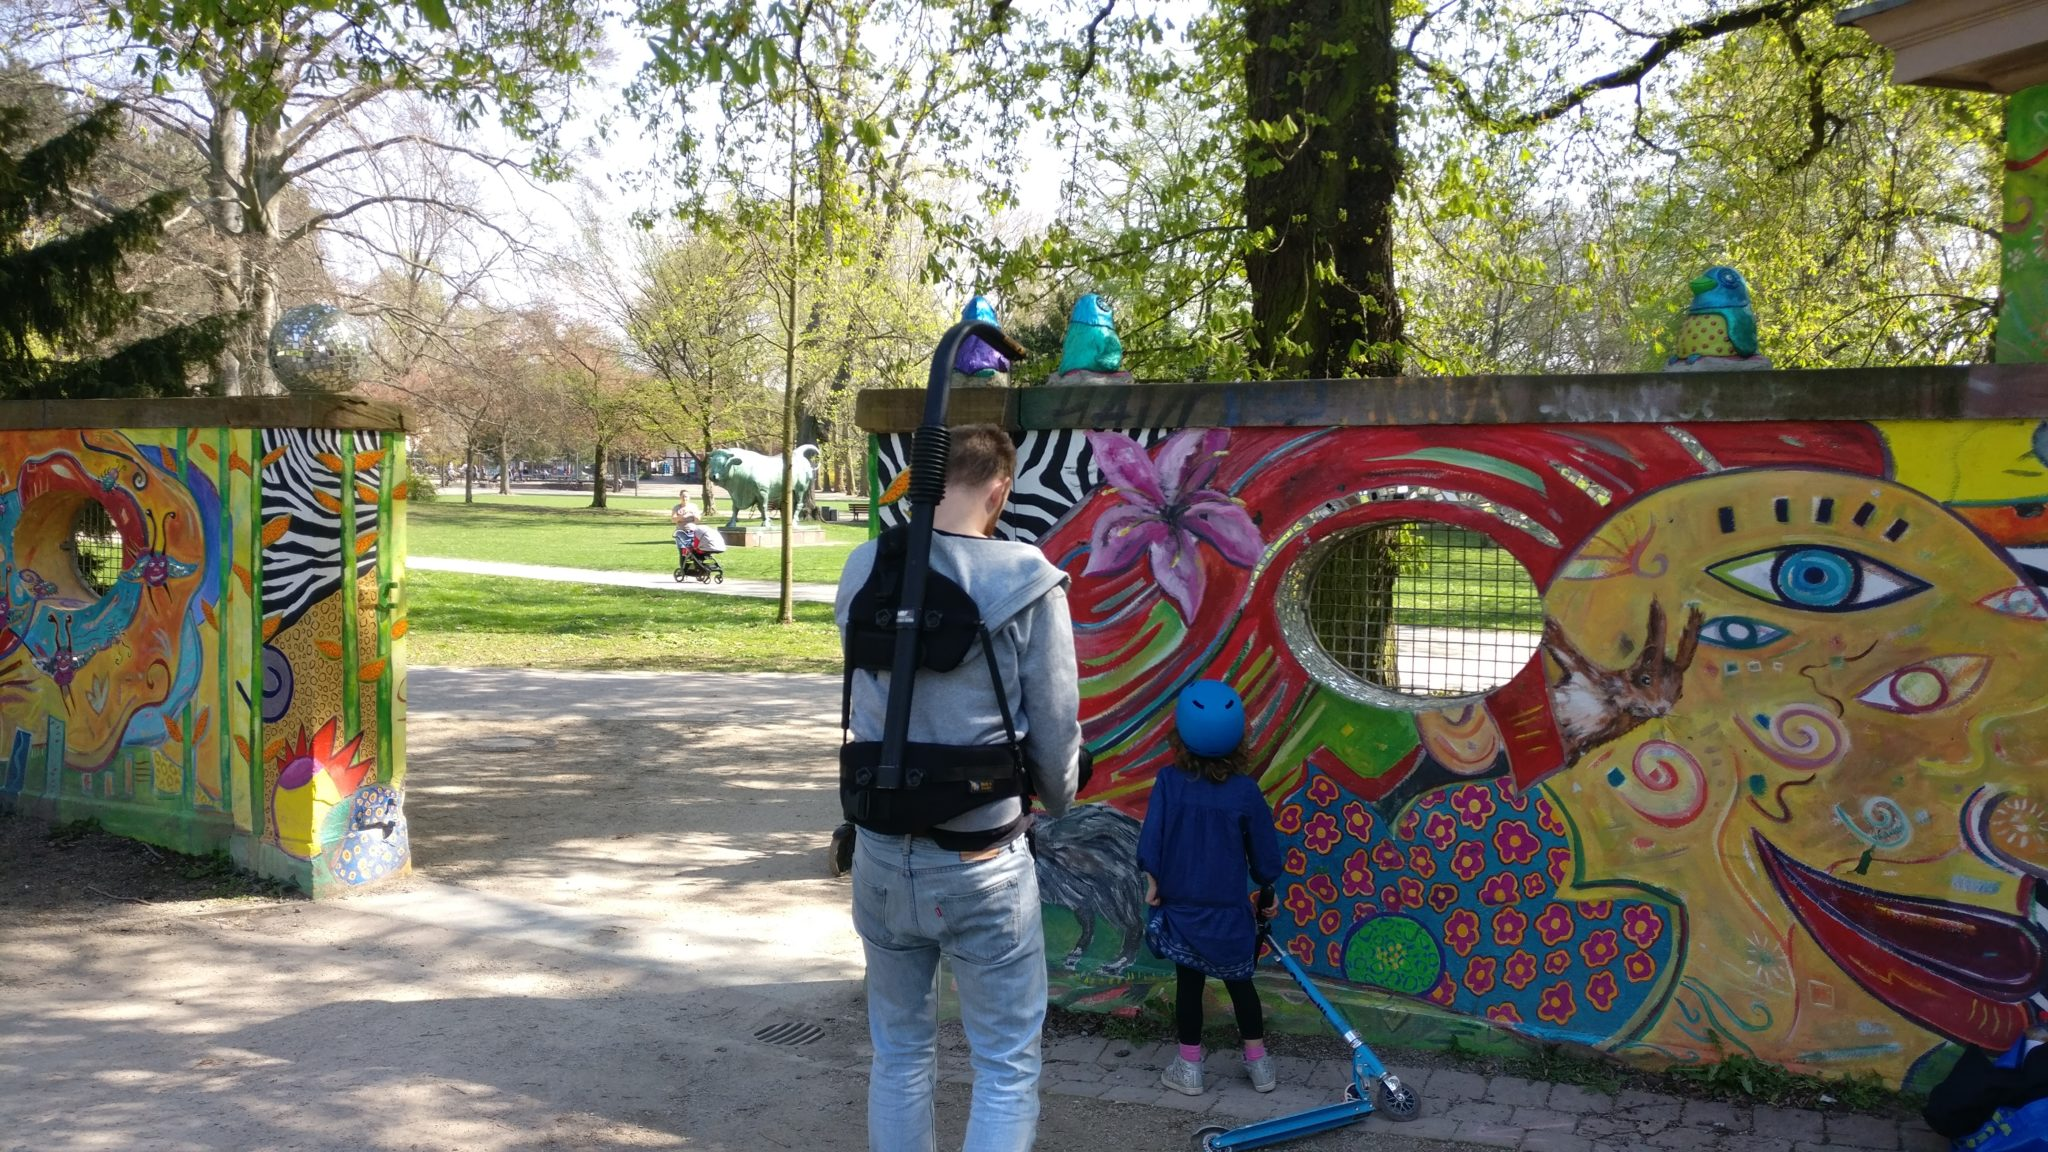 Shooting day at the Günthersburgpark (03.04.2017)